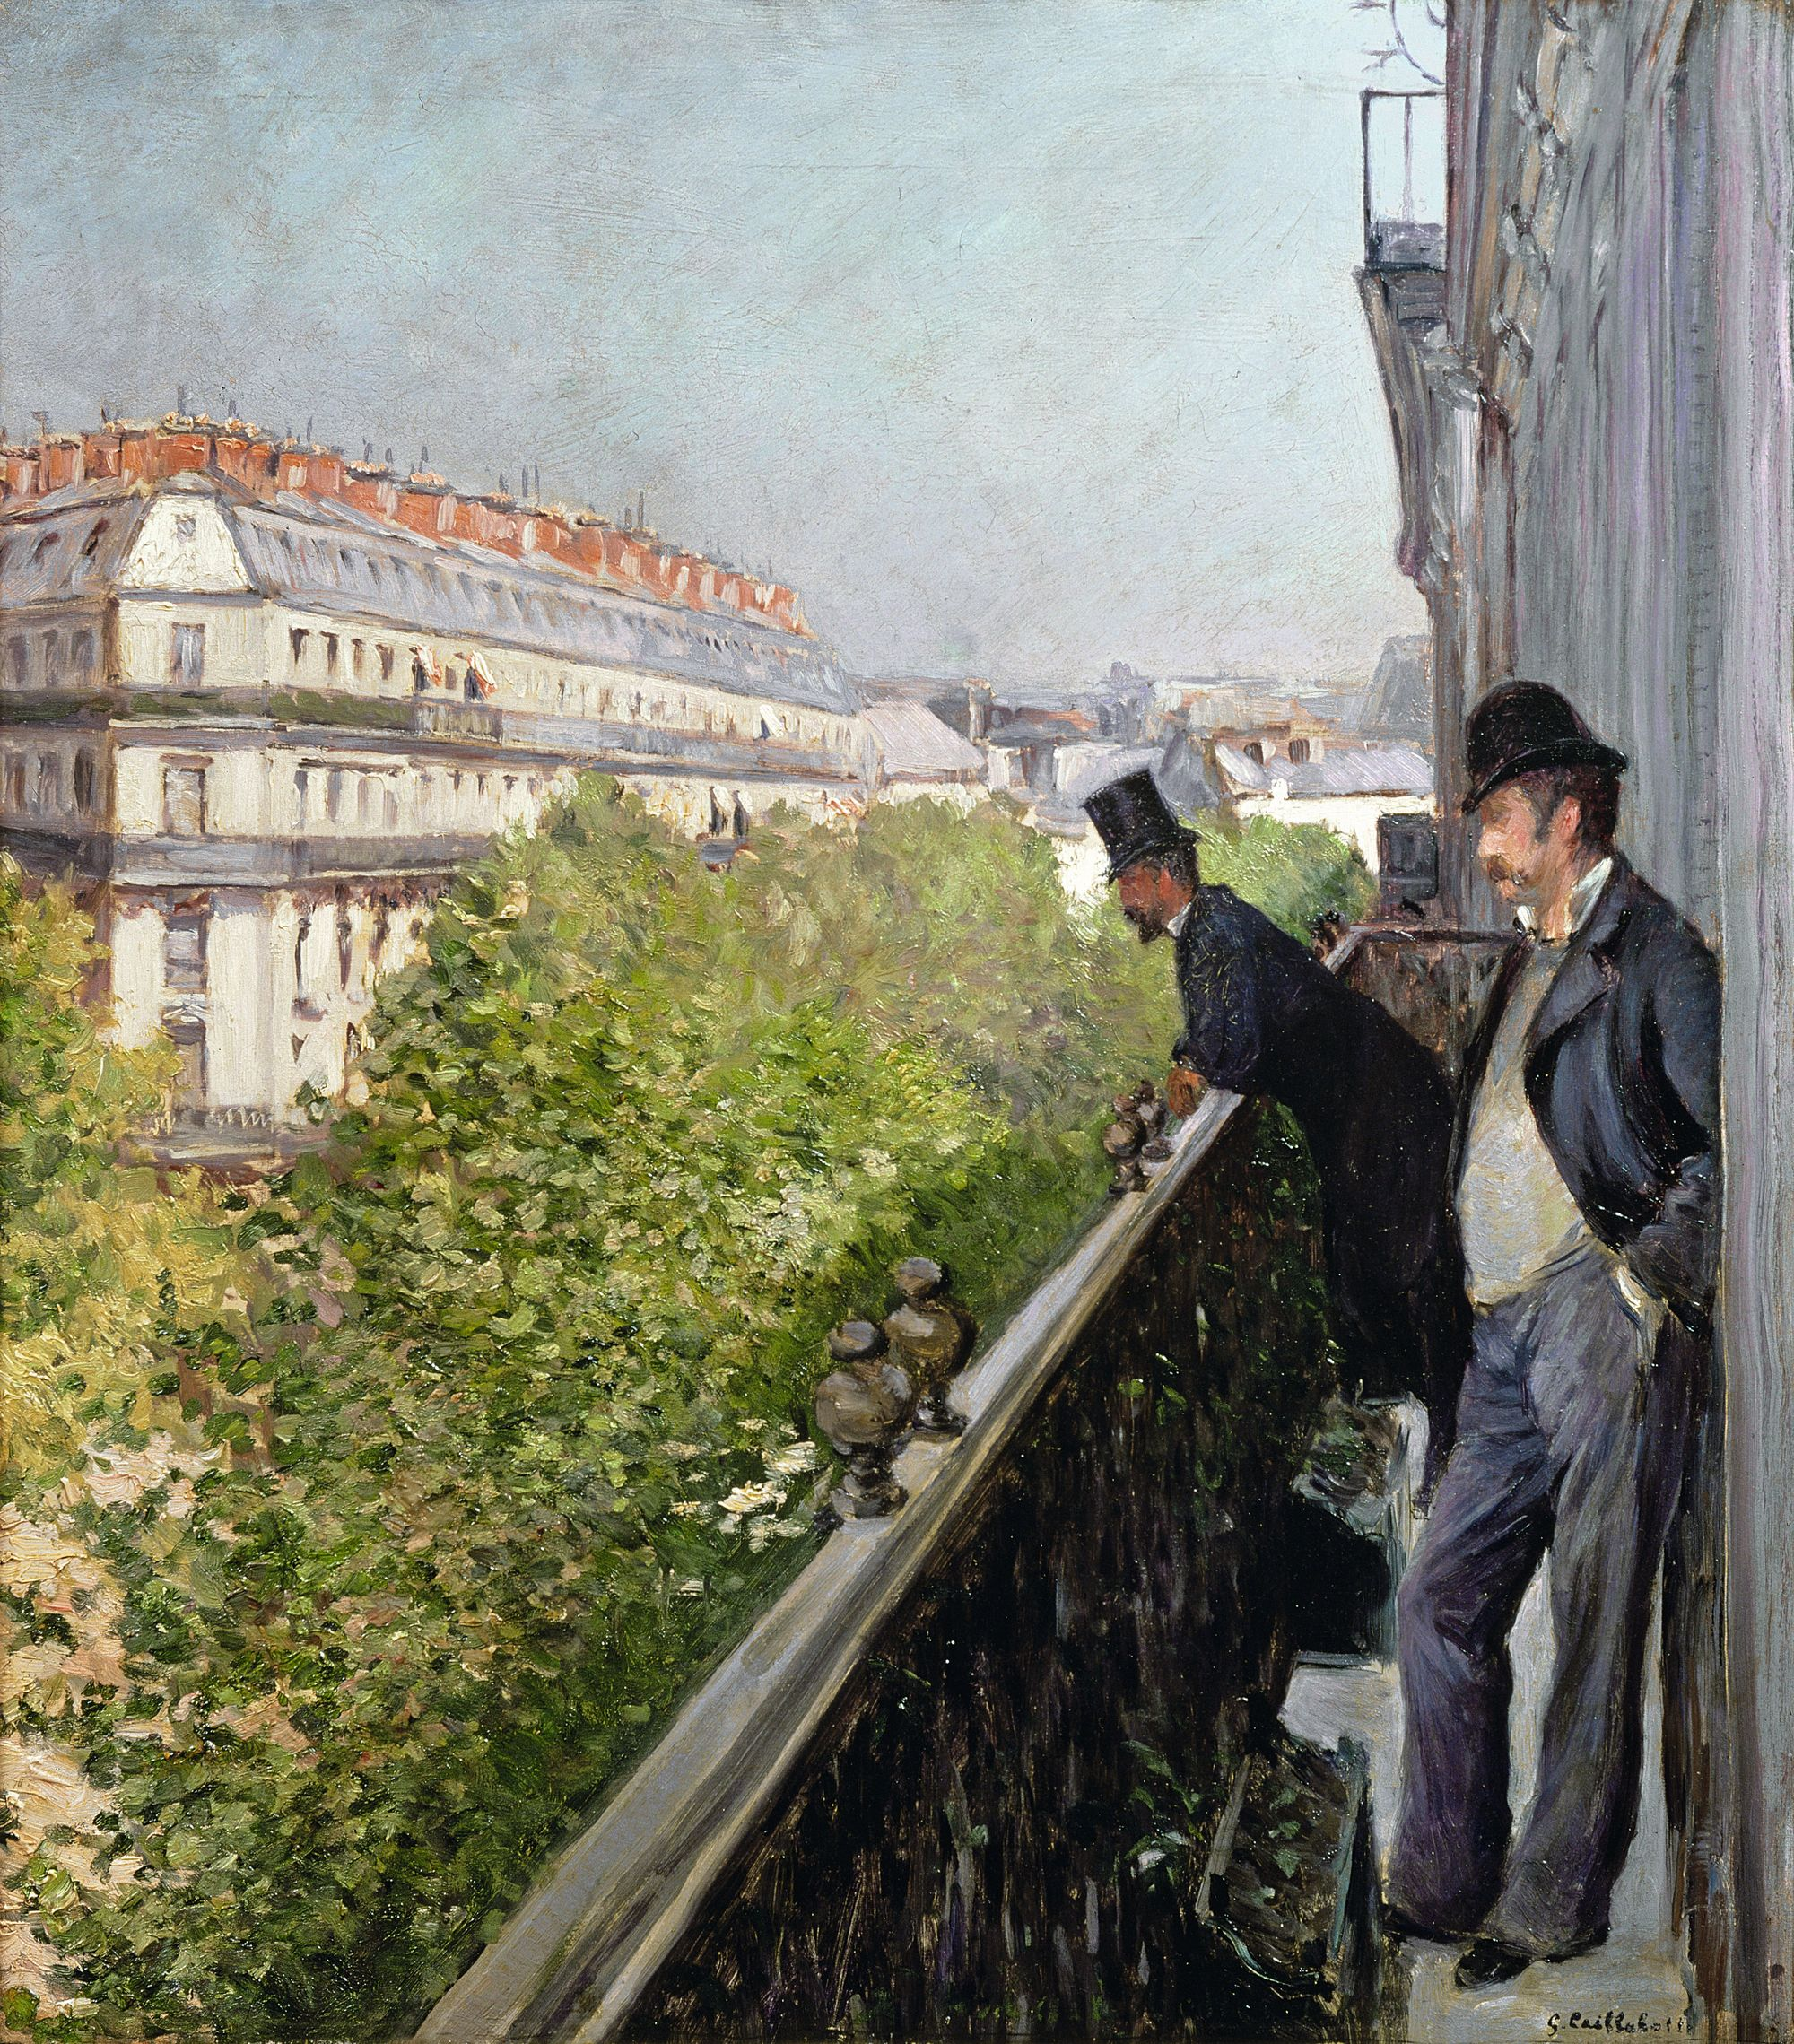 La rénovation urbaine du Paris haussmannien (1850‑1870)